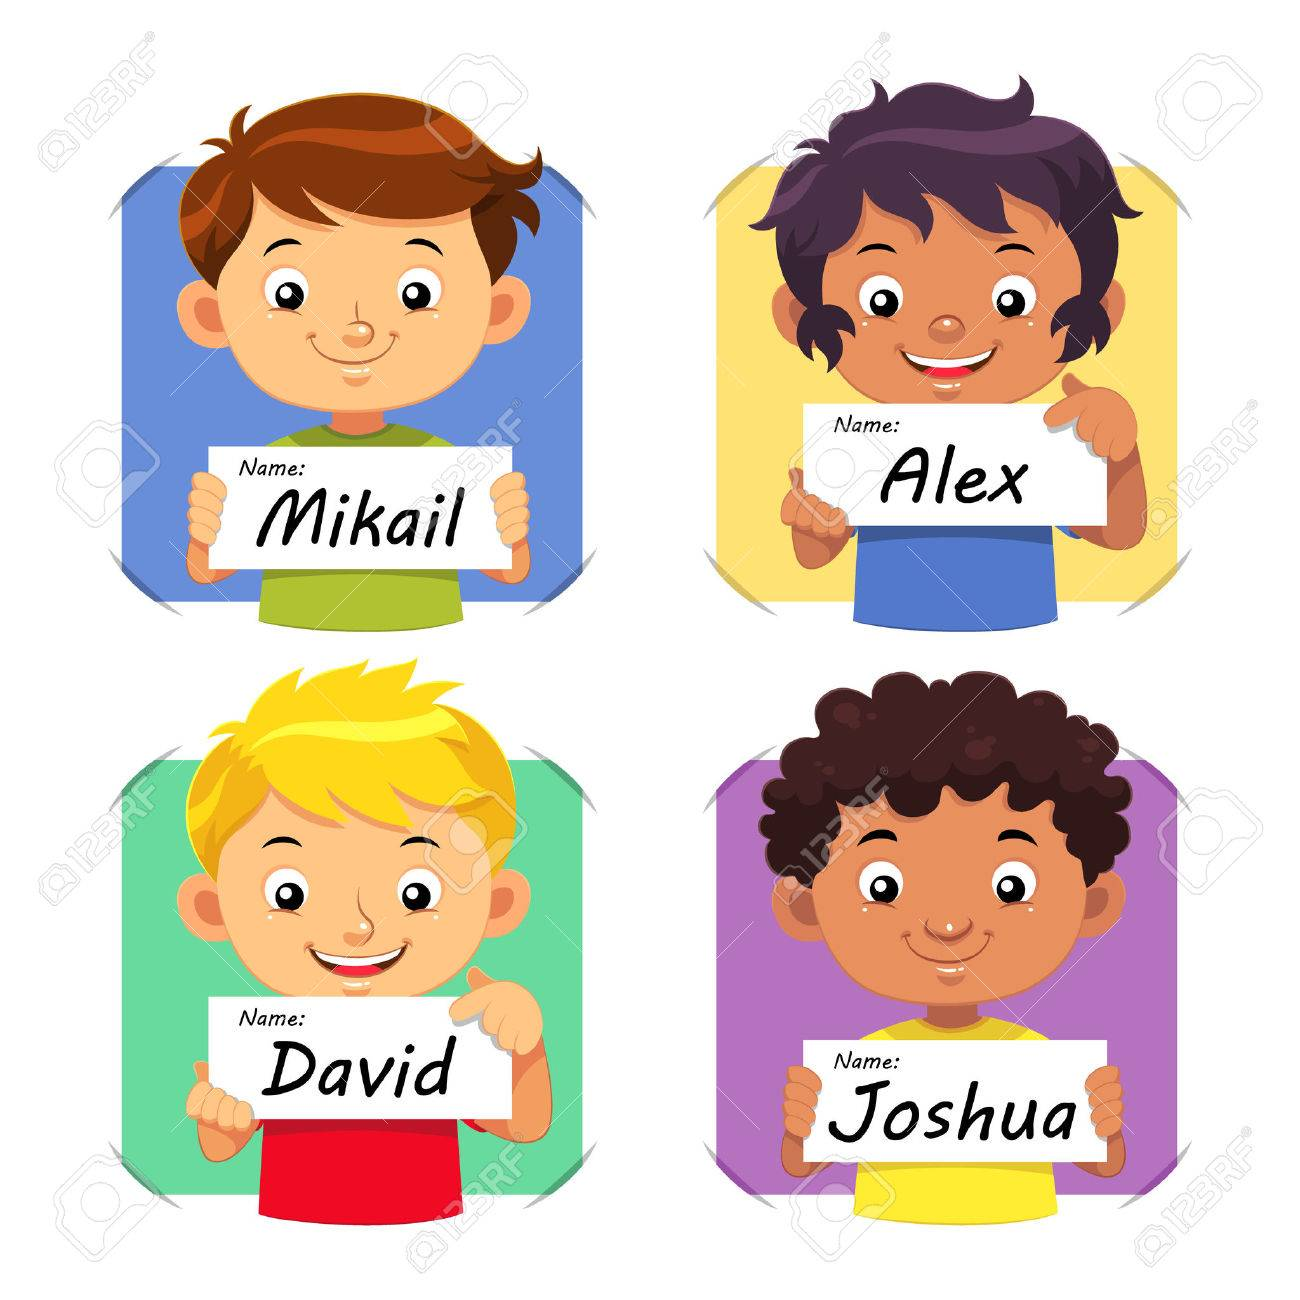 boys name boys holding their name tag royalty free cliparts vectors rh 123rf com names clip art pictures name clipart steve